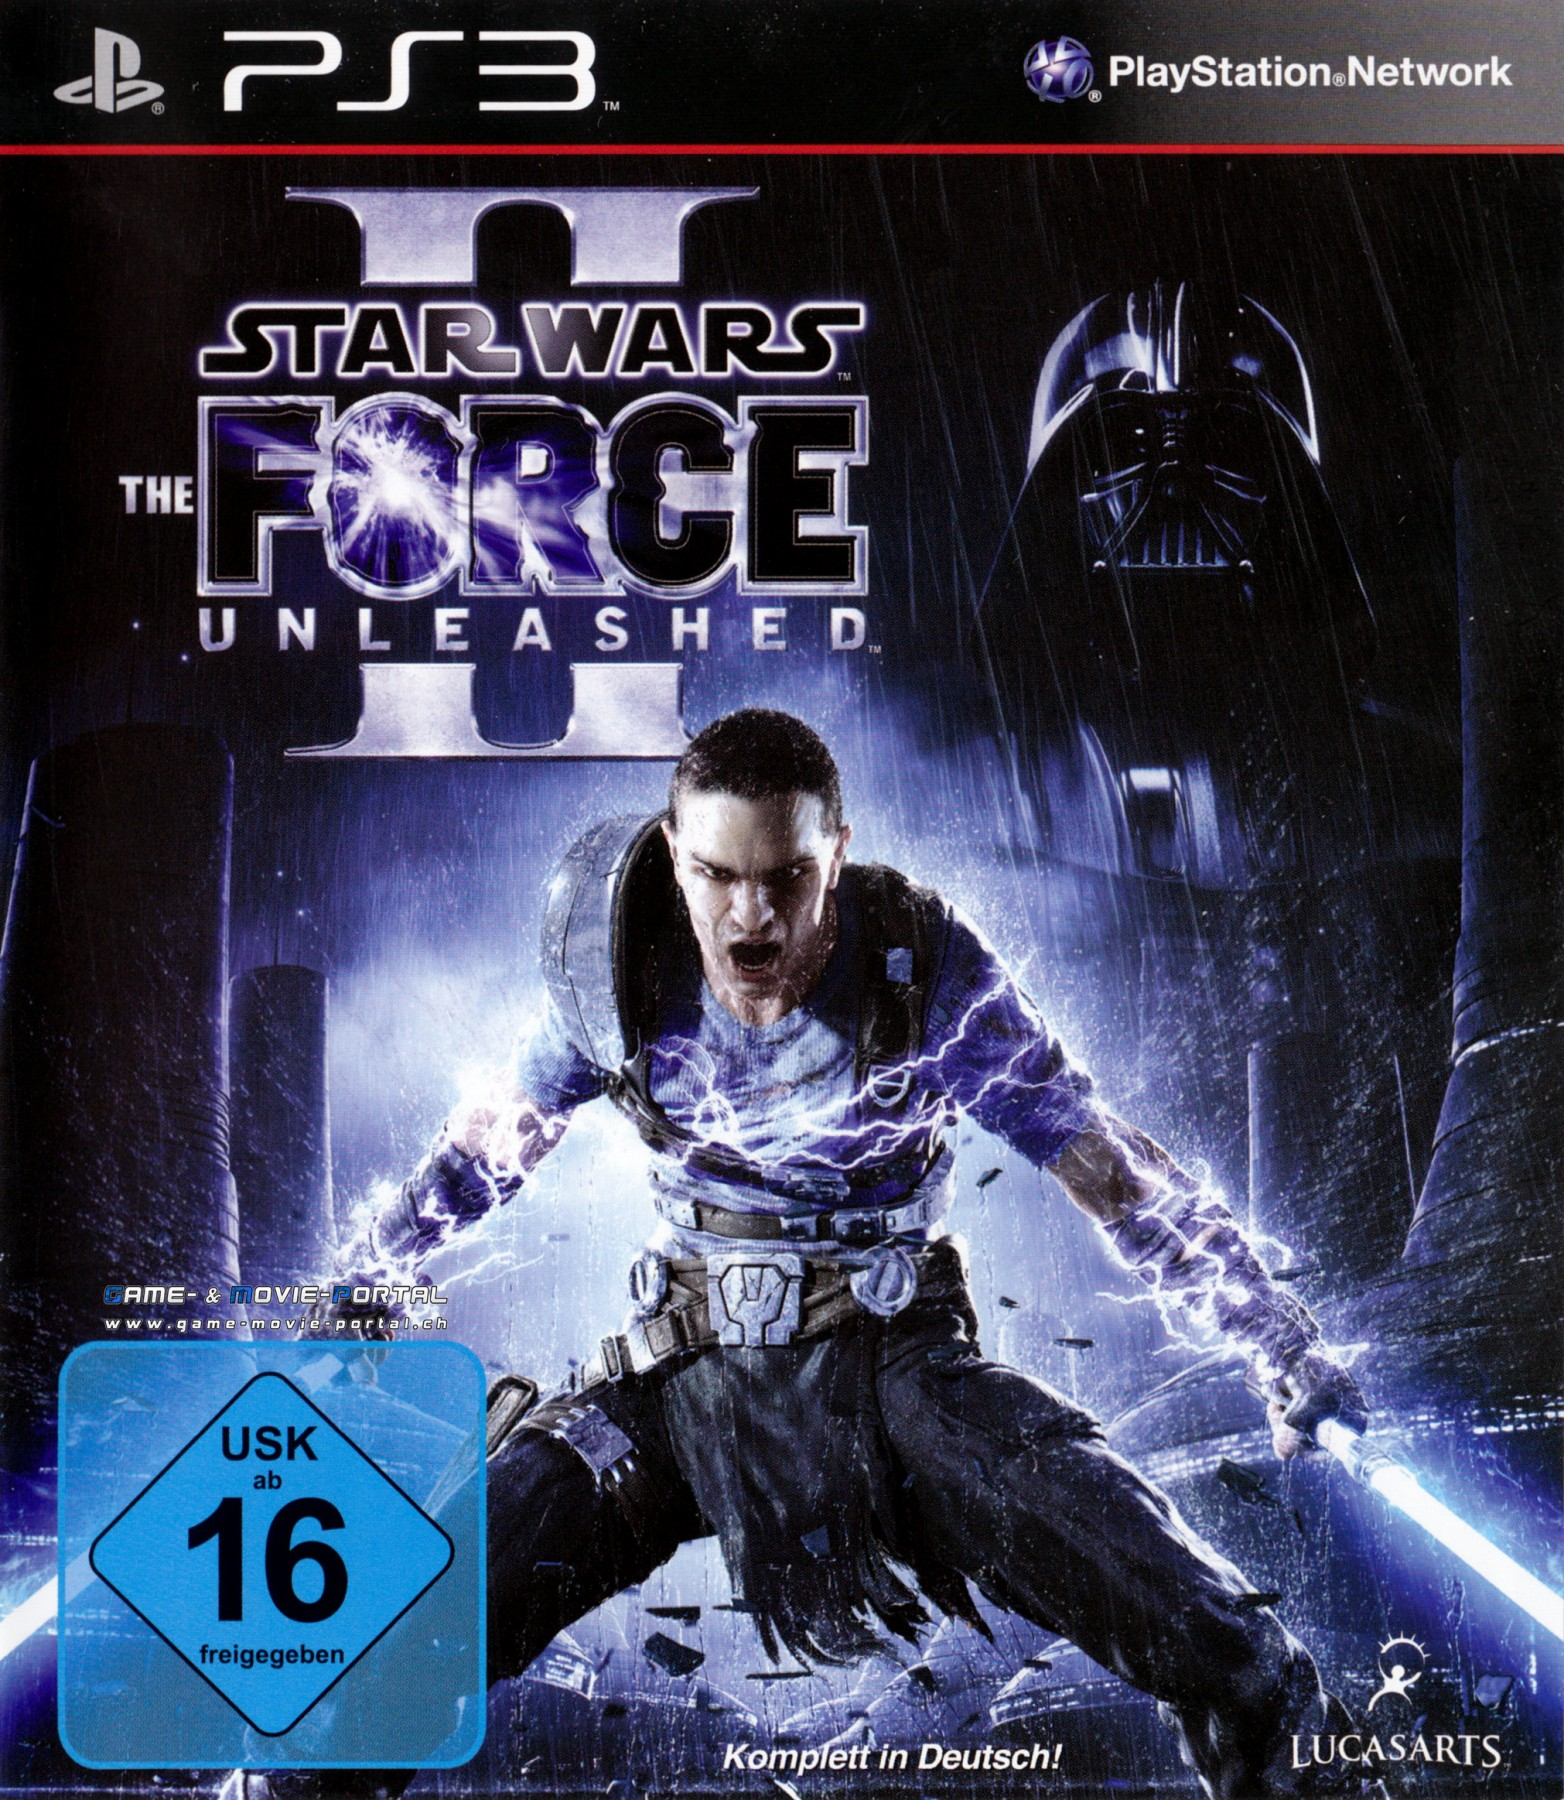 Star Wars The Force Unleashed II | Star Wars The Force Unleashed 2 б/у PS3